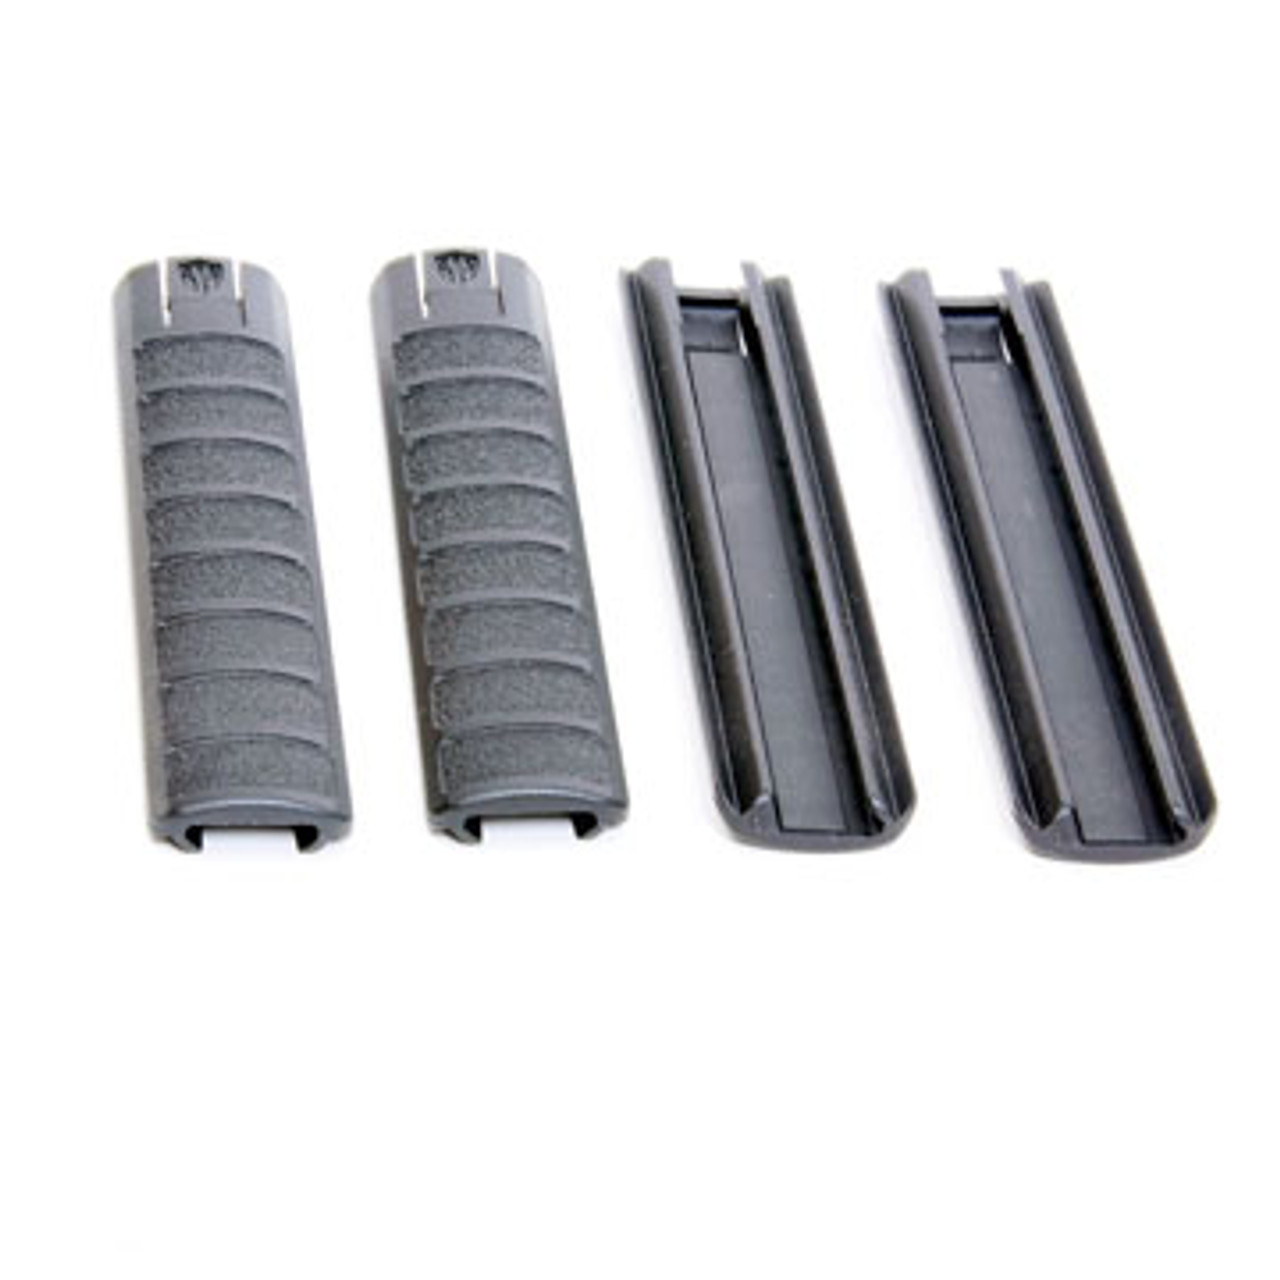 Archangel® Extended Picatinny Rail Cover (4-Pack) - Black Polymer